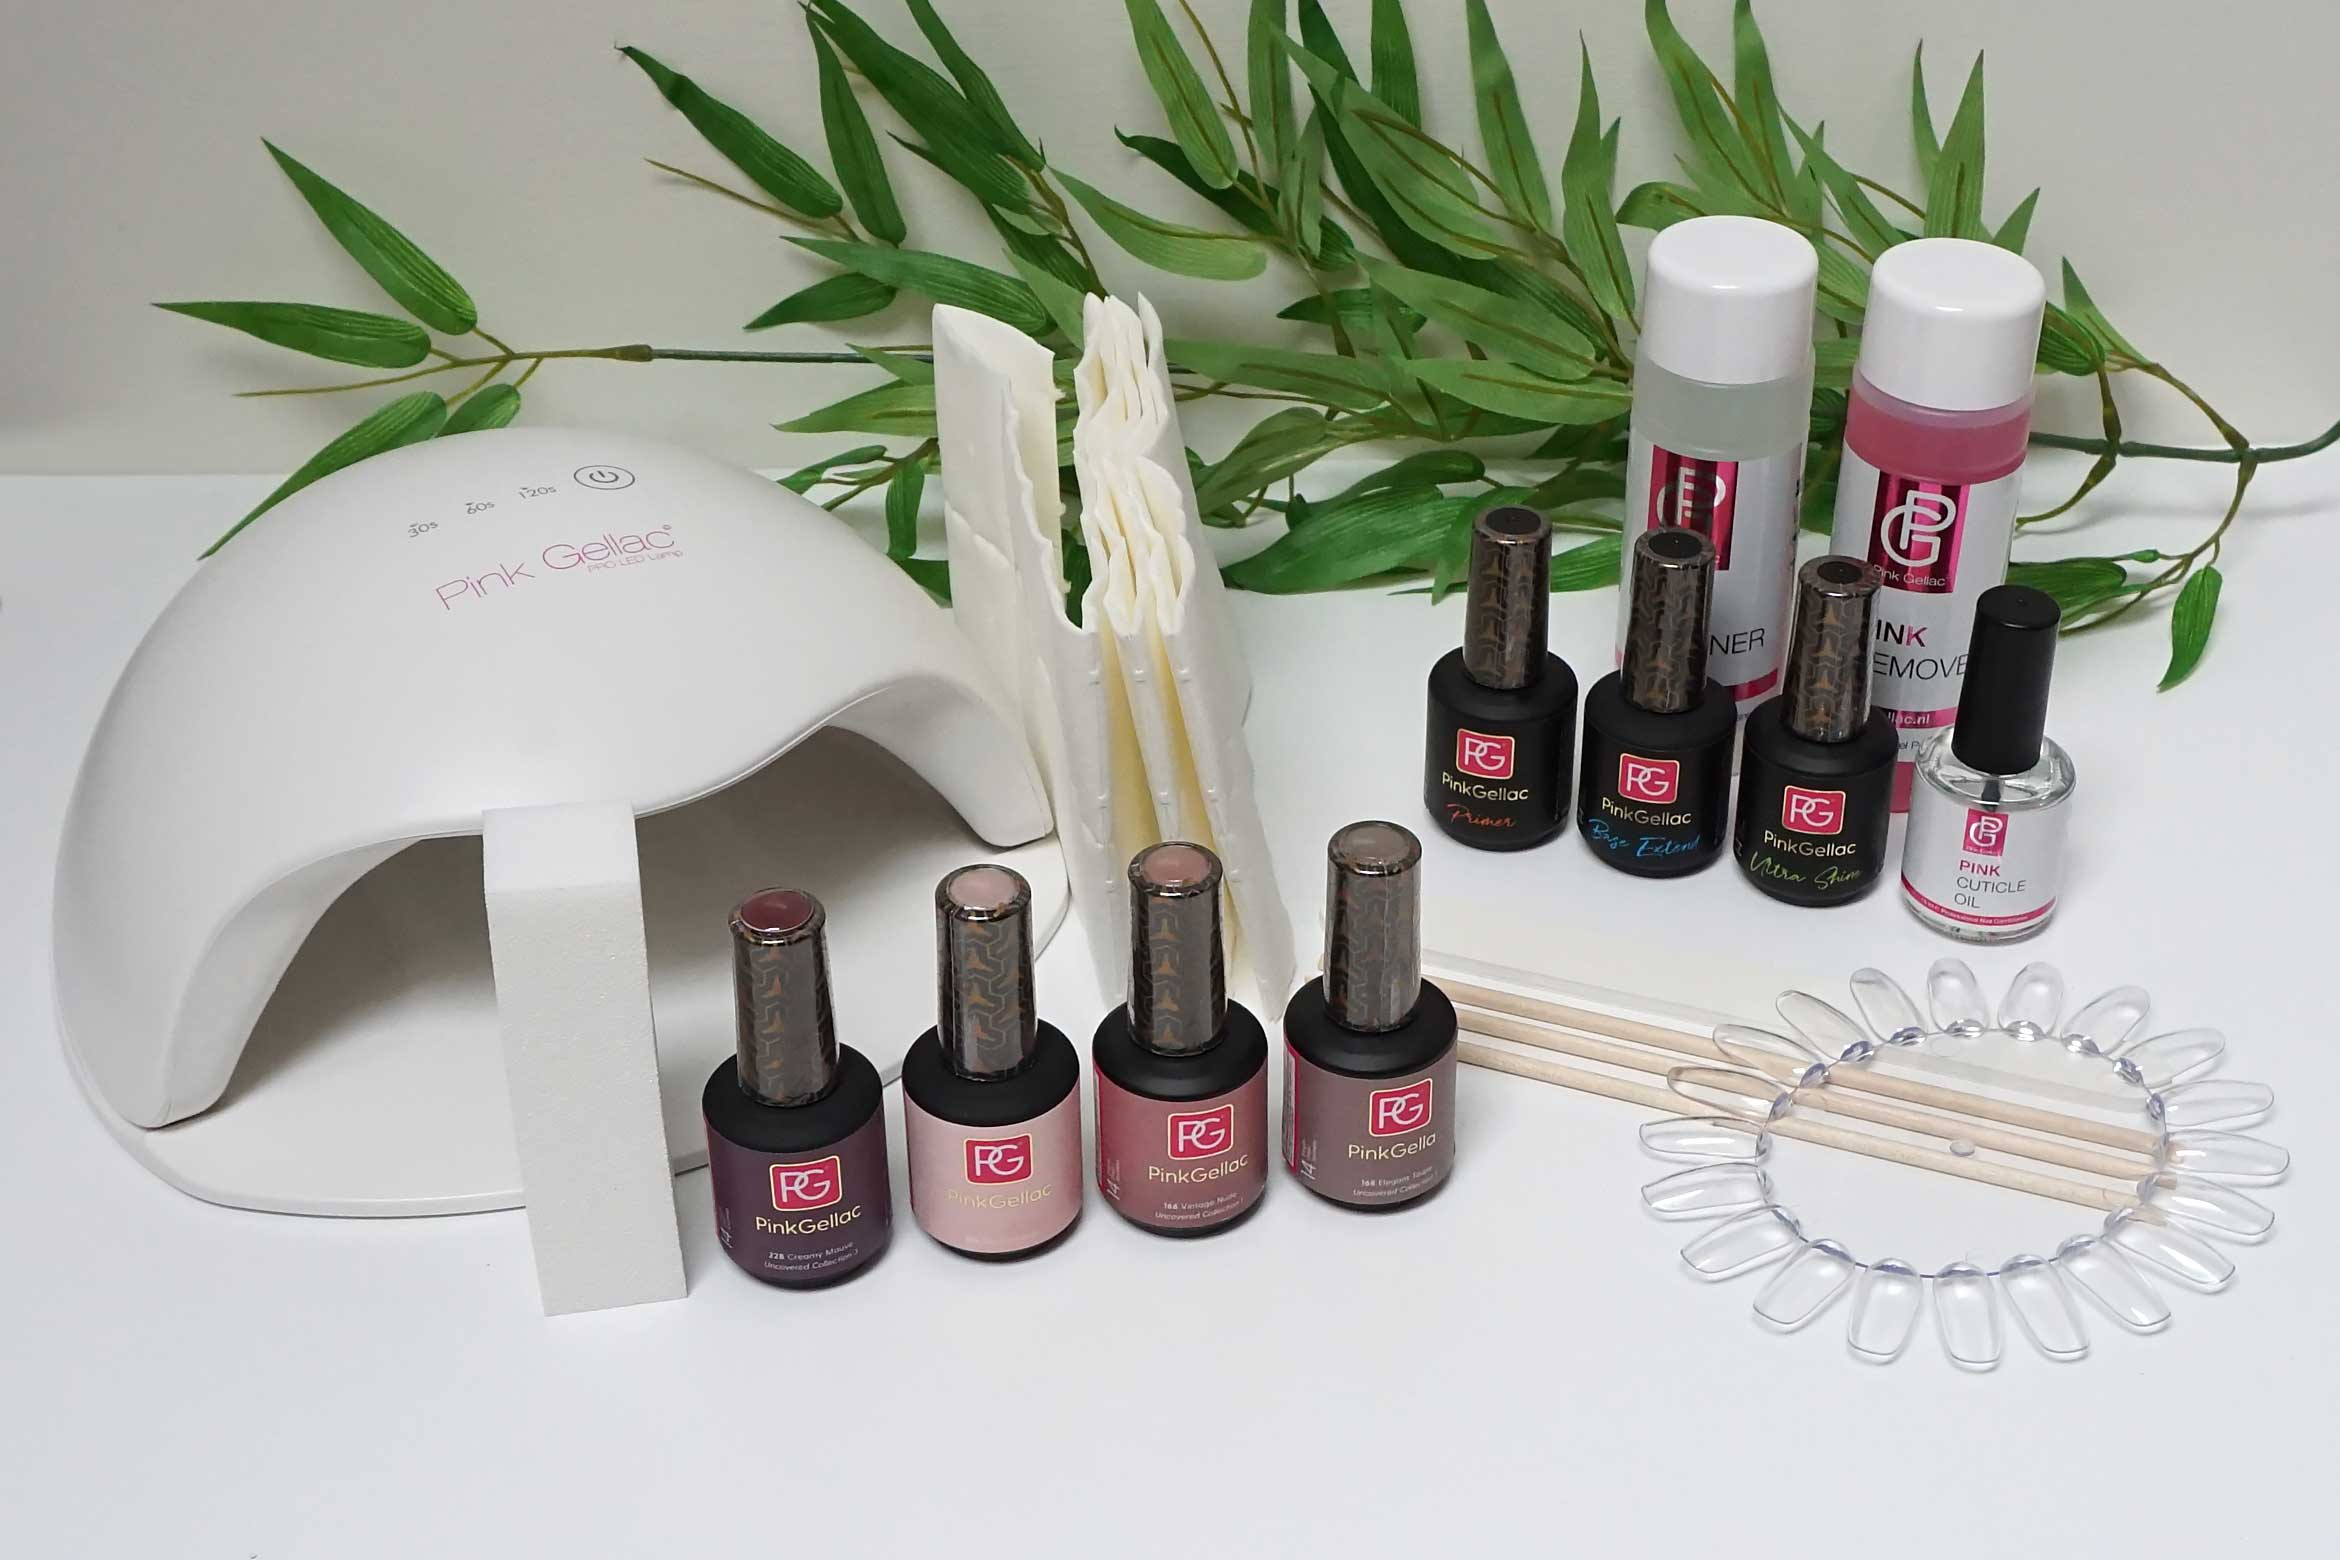 Pink-Gellac-starterset-Premium-Vogue-review-2